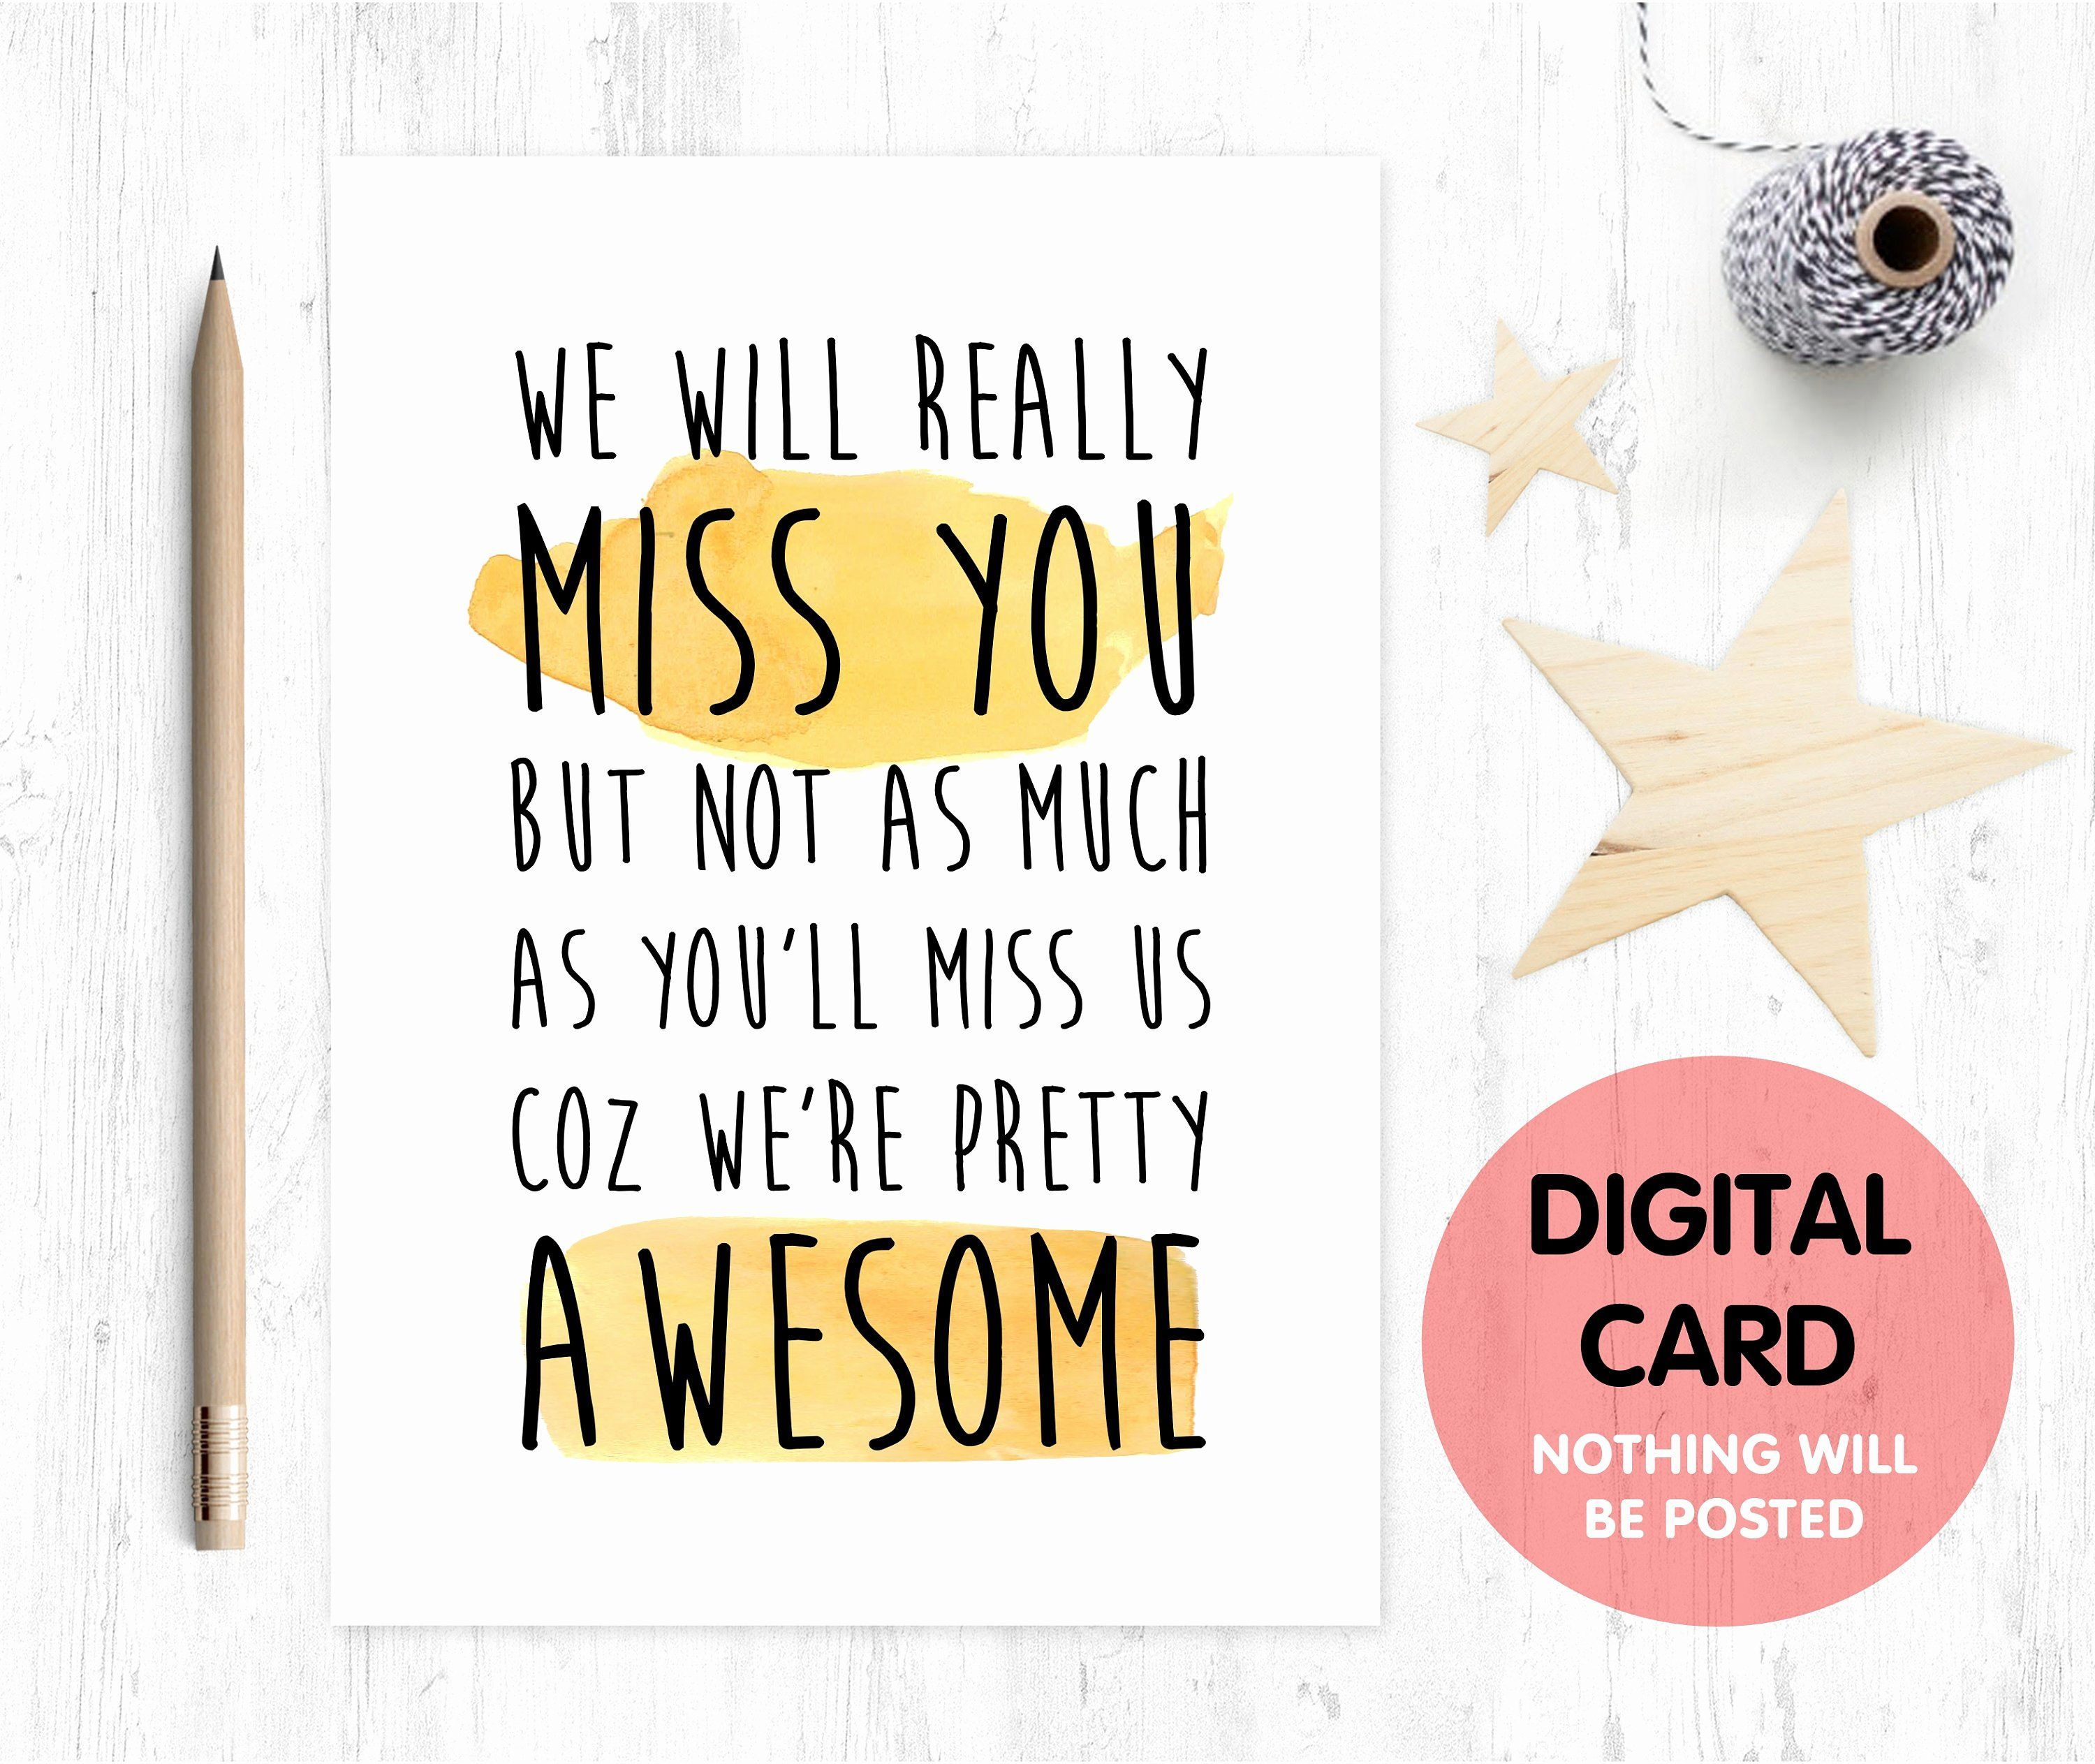 Farewell Card Template New Free Retirement Cards to Print